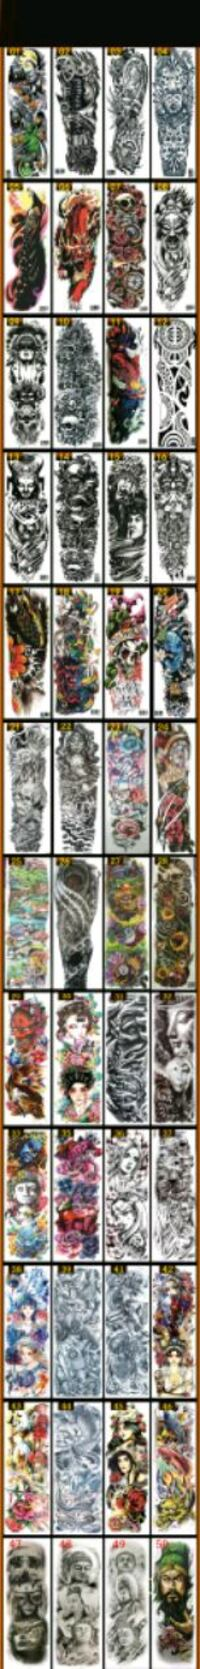 Temporary Tattoos Agent/Dealer/Distributor Wanted  San Francisco, 94121